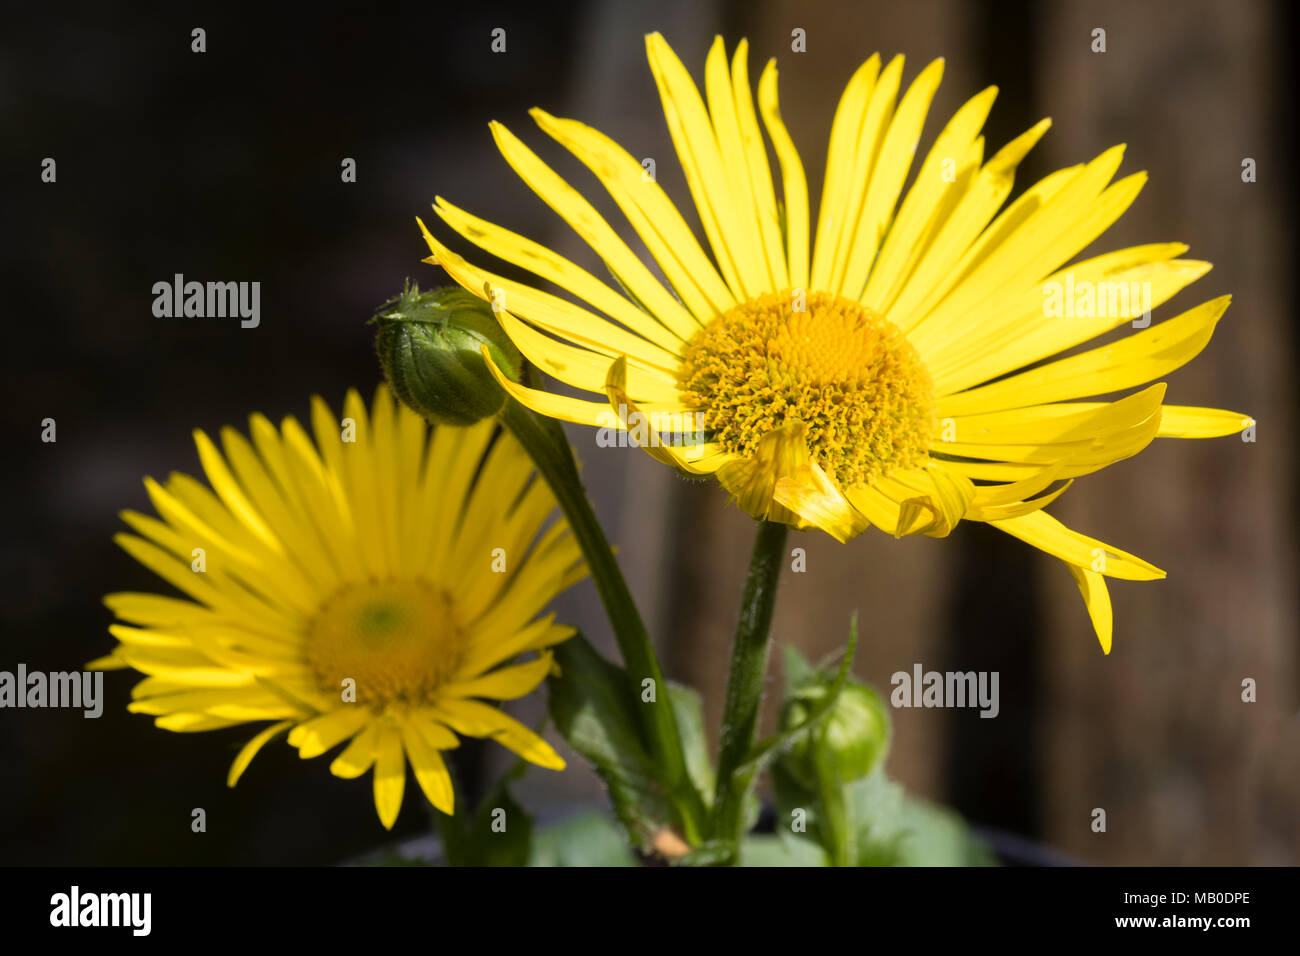 Bright yellow daisy flowers of the shade tolerant spring flowering bright yellow daisy flowers of the shade tolerant spring flowering perennial doronicum x excelsum harpur crewe mightylinksfo Images